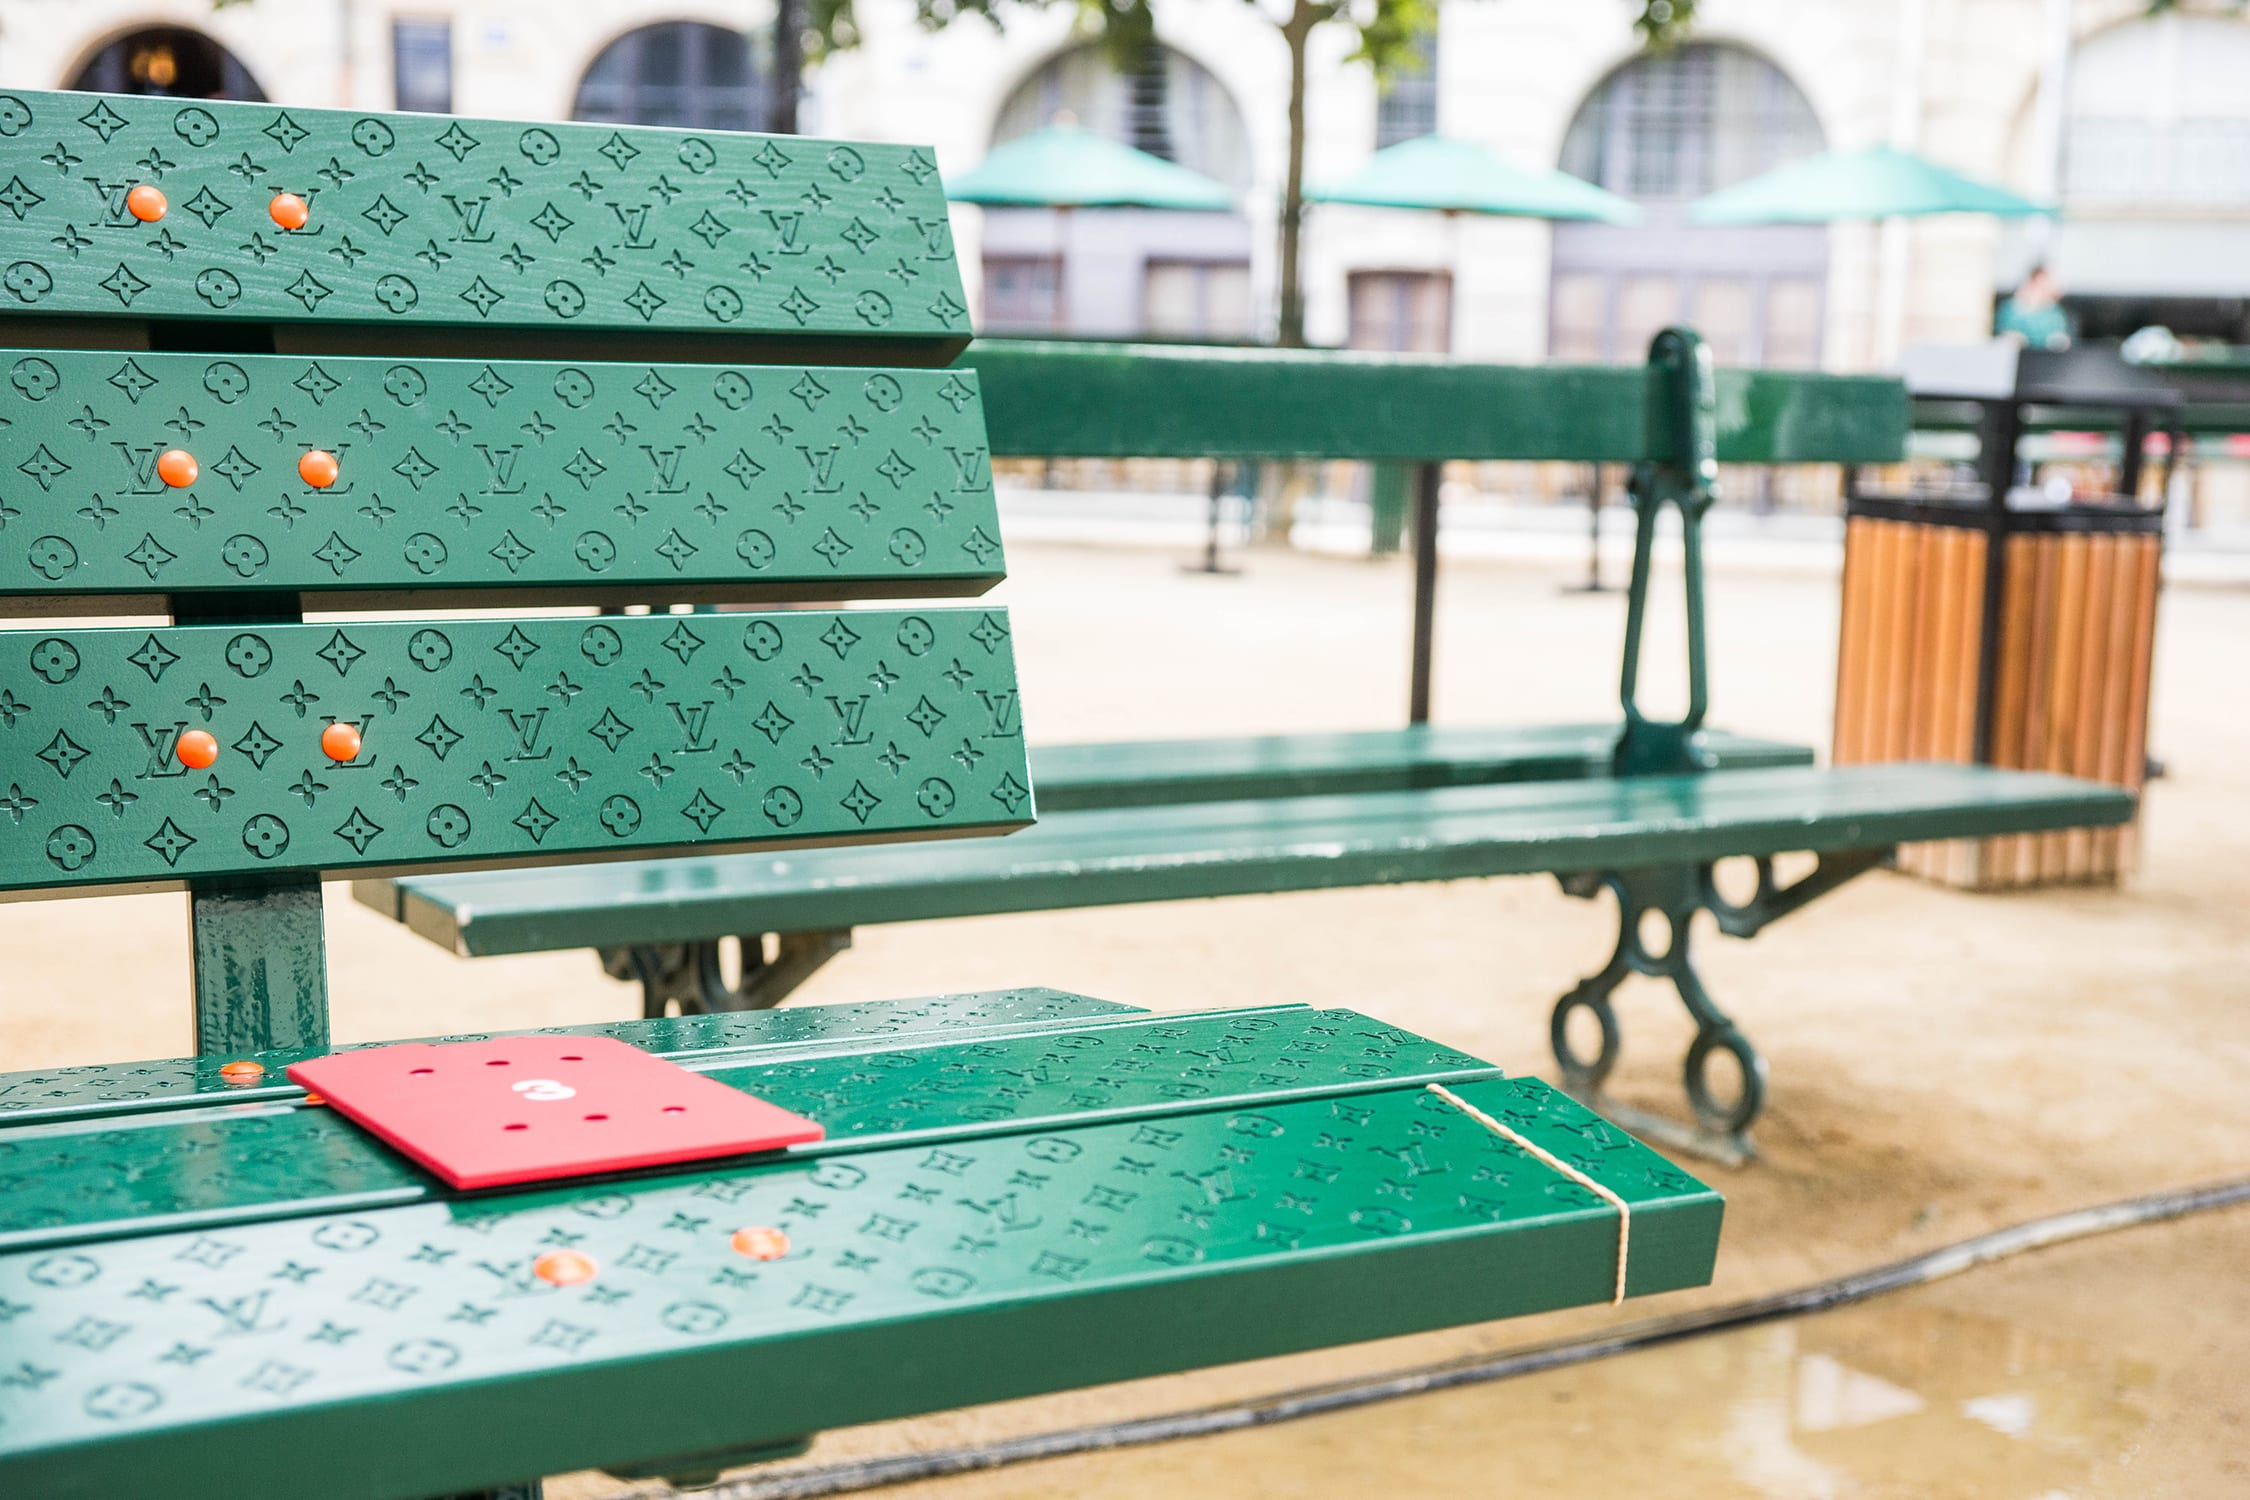 Detailed Shot of the Louis Vuitton Bench for the men's Spring Summer 2020 Runway Show.